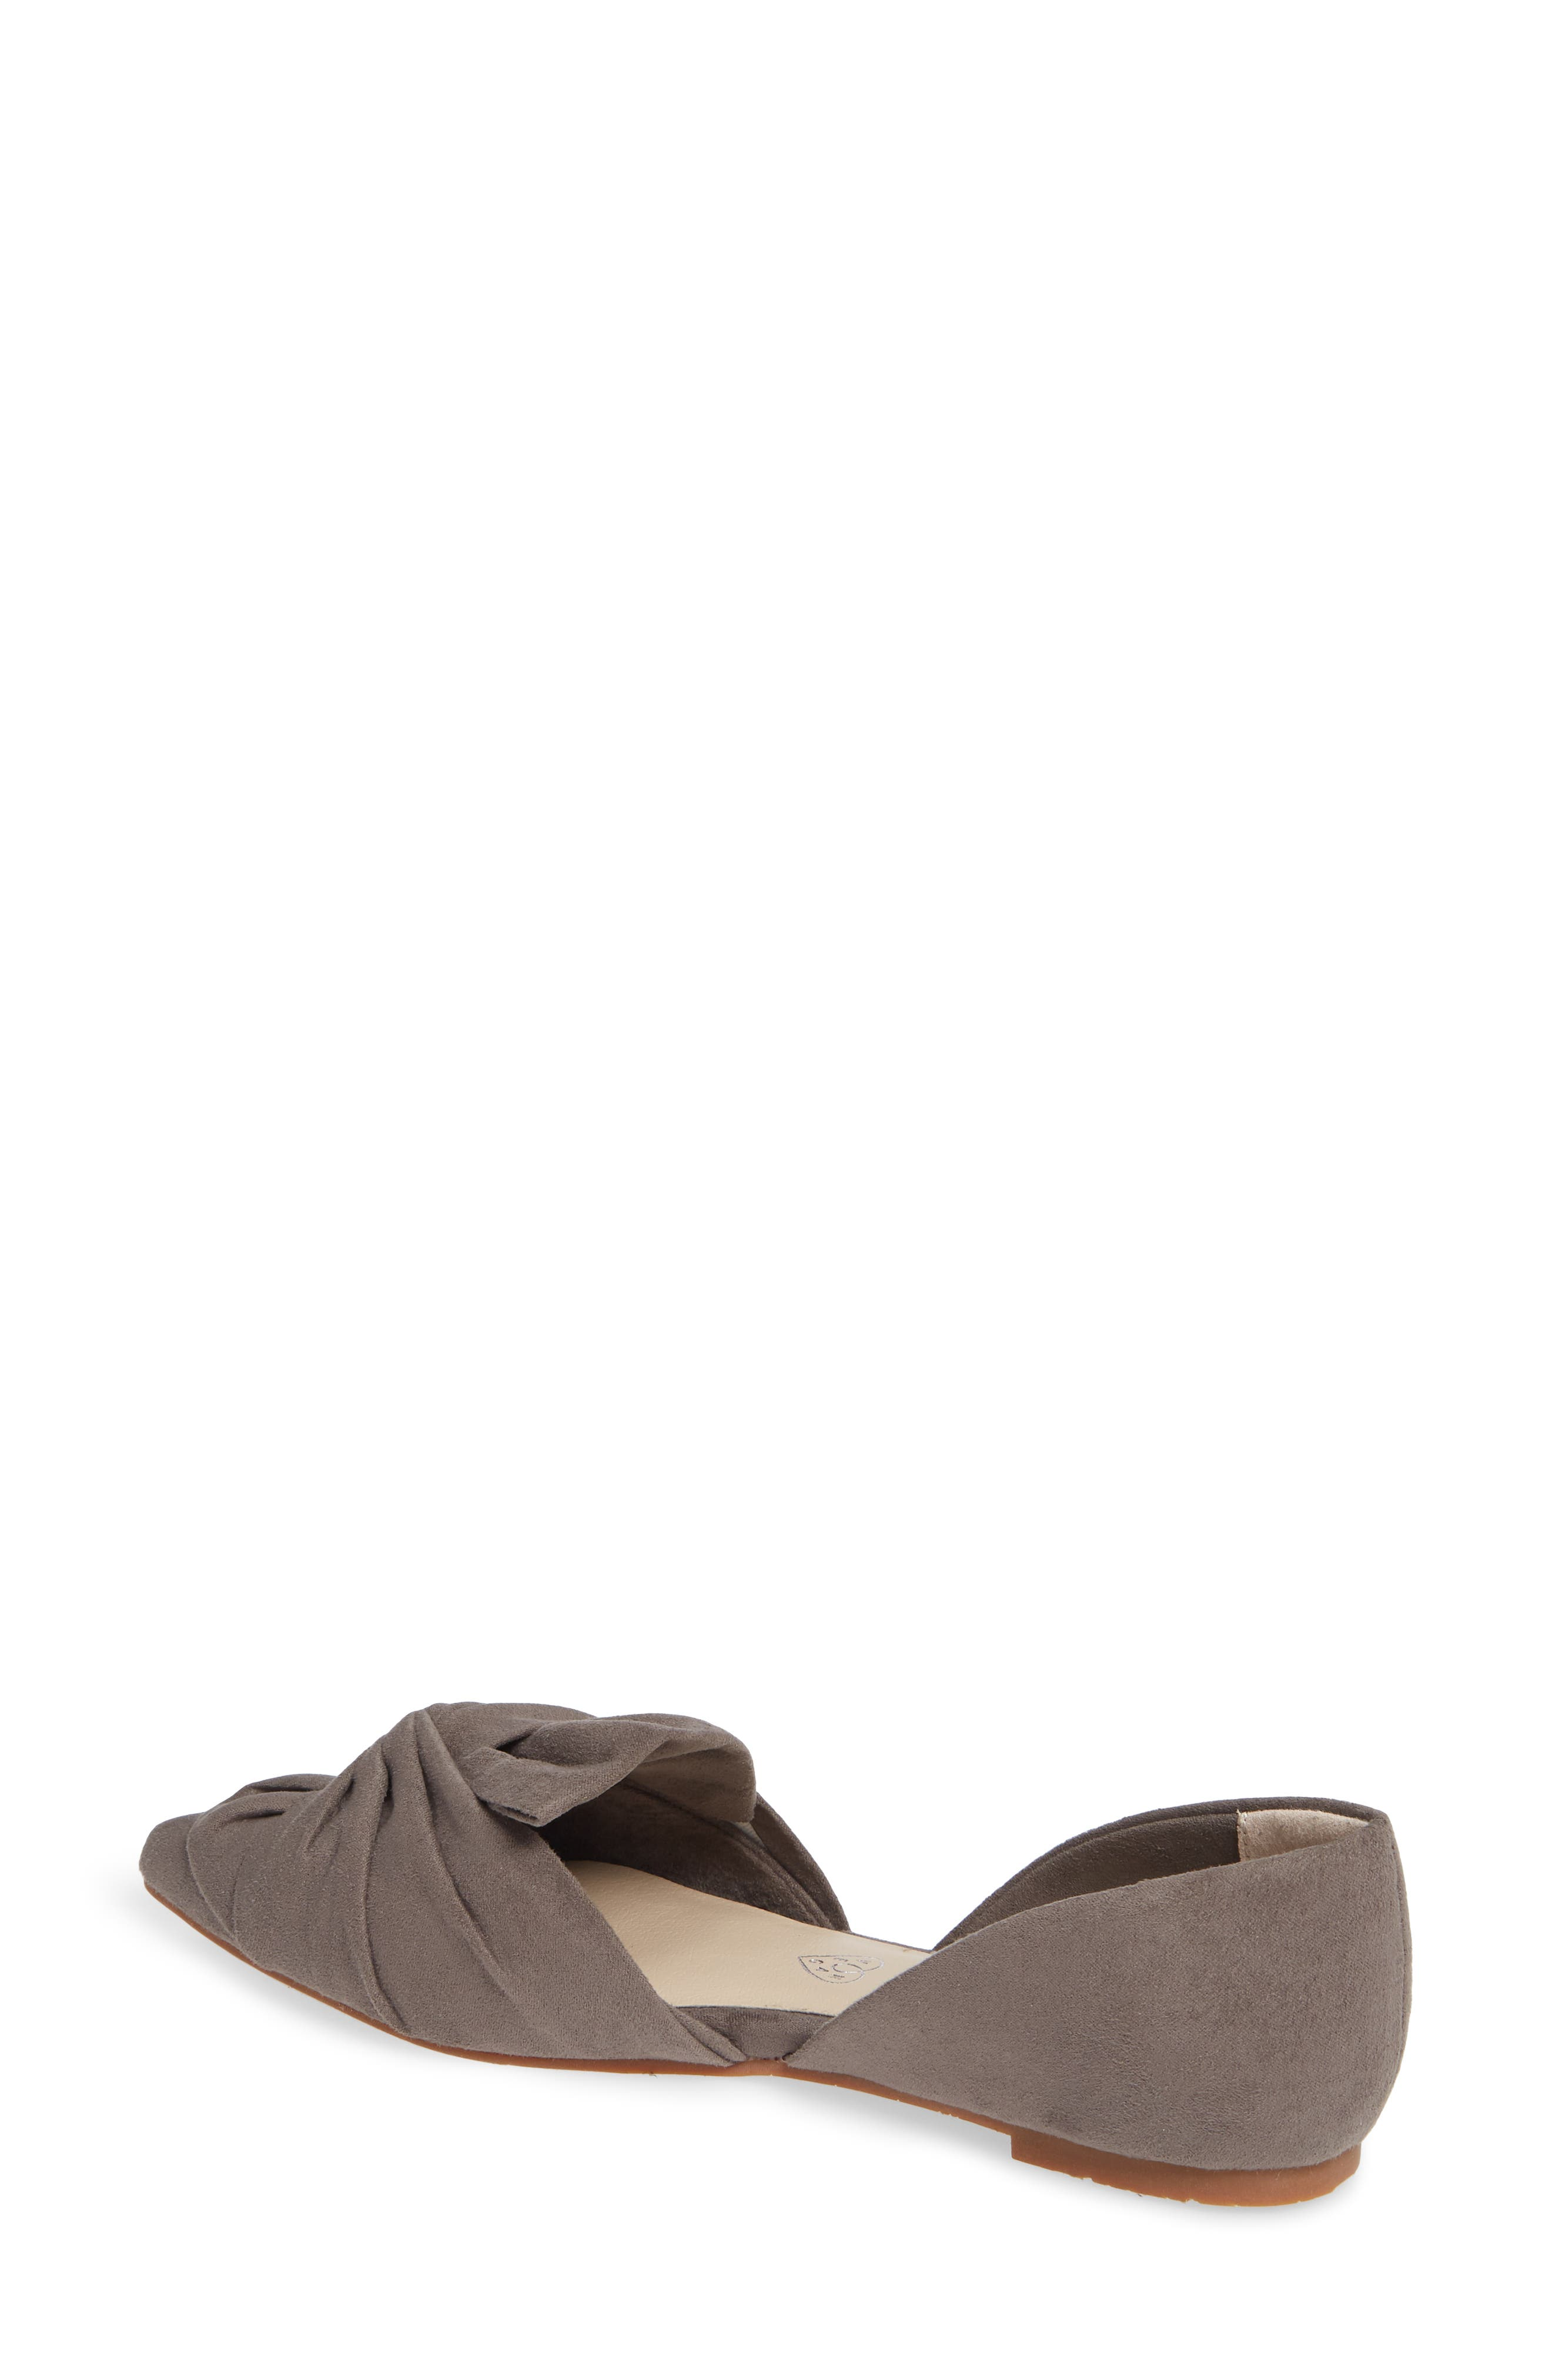 Snow Cone d'Orsay Flat,                             Alternate thumbnail 2, color,                             GREY SUEDE